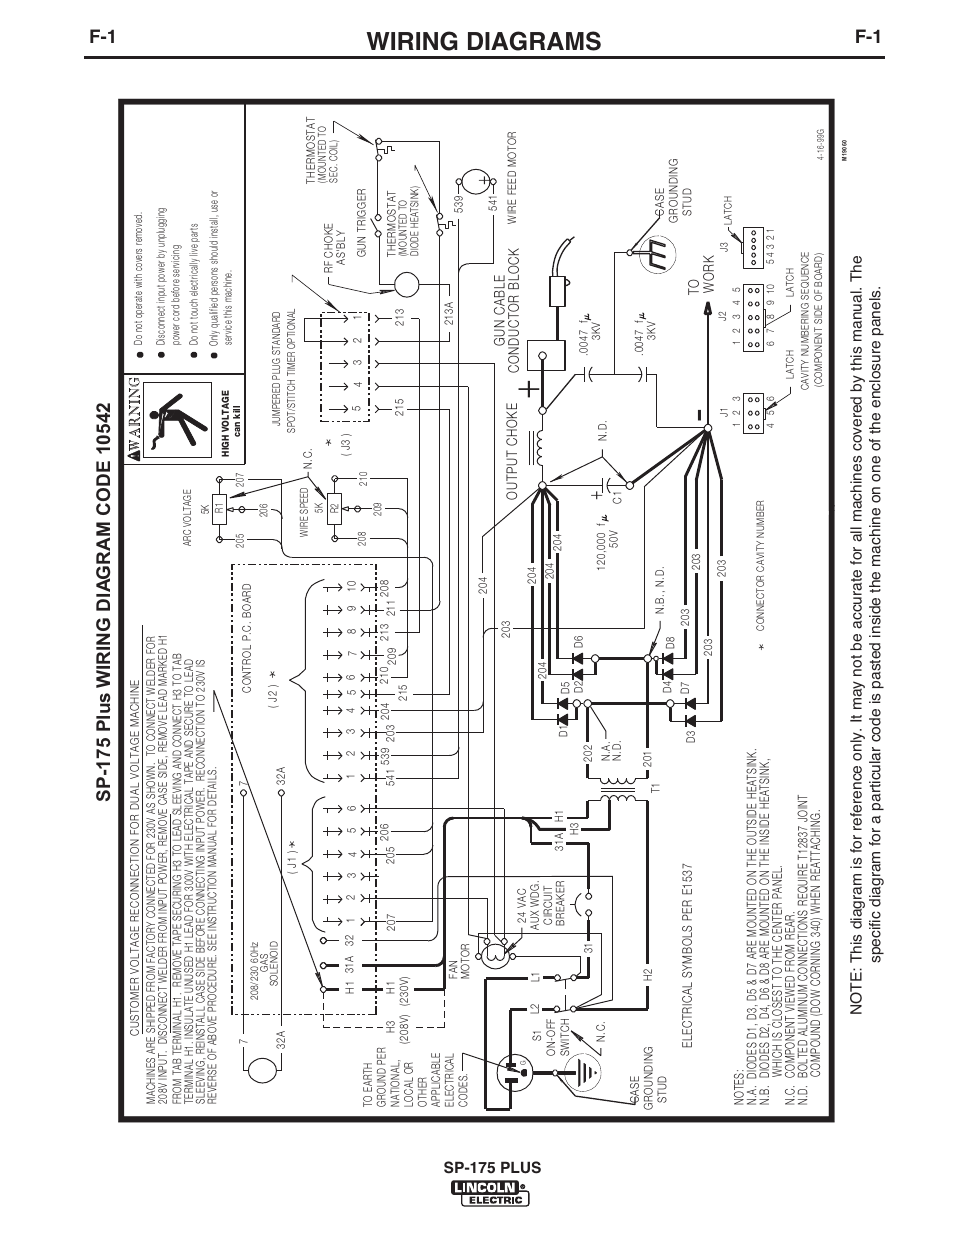 Wiring Diagrams  Sp